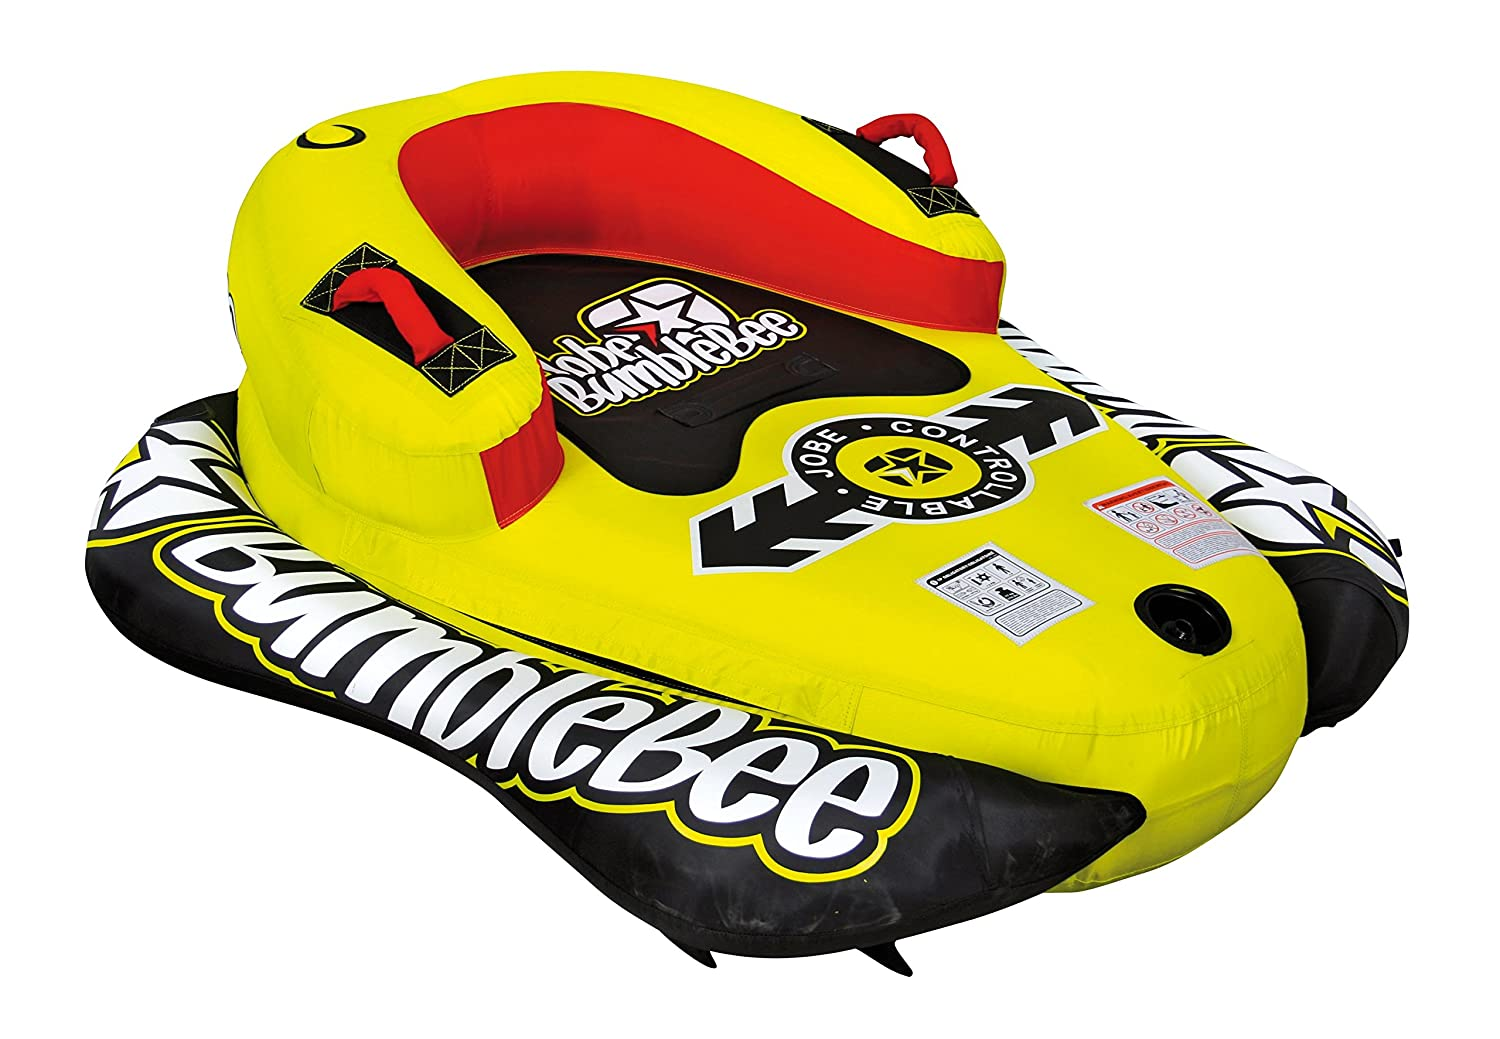 Jobe Bumble Bee 1P - Flotador de Arrastre, Color Amarillo: Amazon.es: Deportes y aire libre